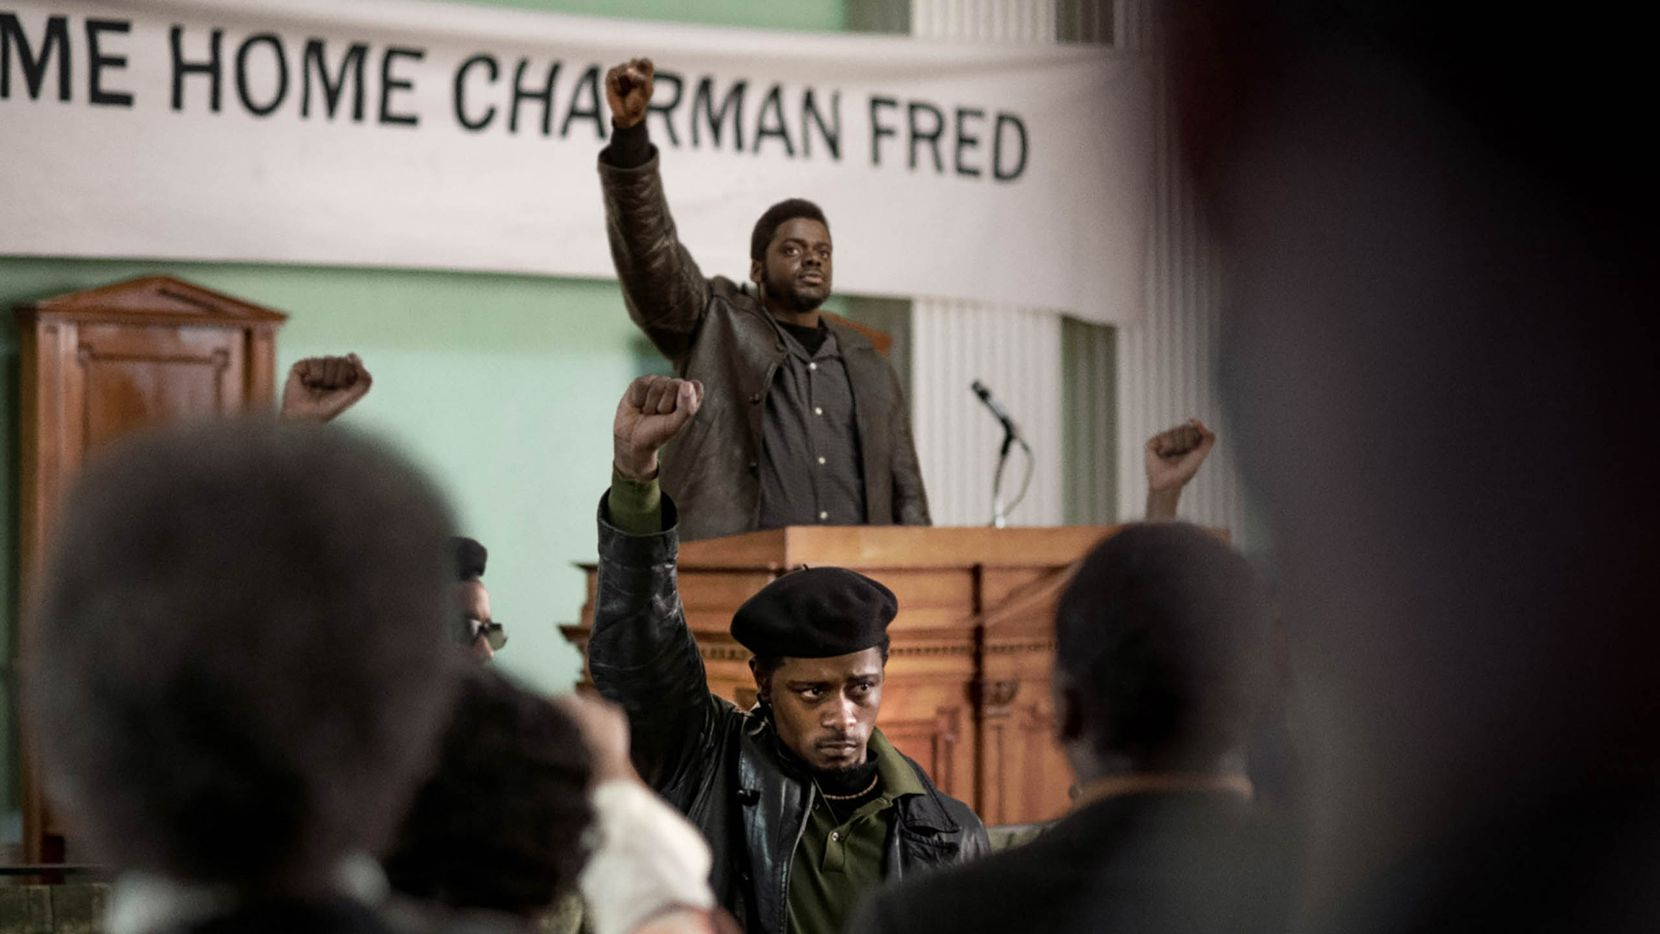 """Lakeith Stanfield and Daniel Kaluuya appear in """"Judas and the Black Messiah"""" by Shaka King, an official selection of the Premieres section at the 2021 Sundance Film Festival."""